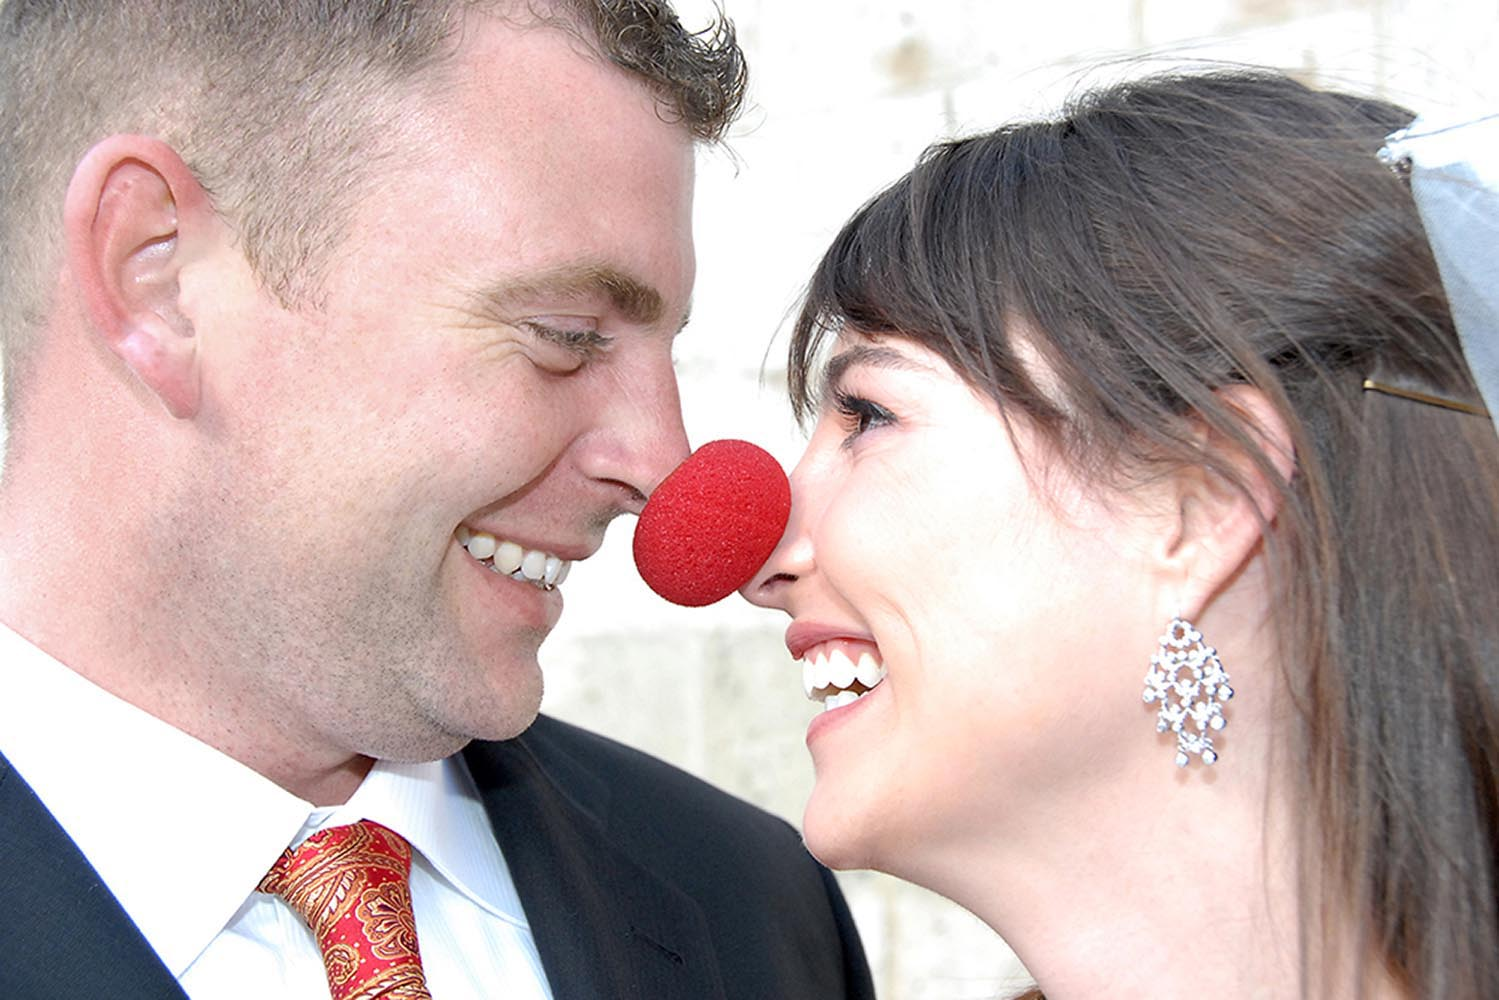 Close-up portrait of bride and groom with clown's nose